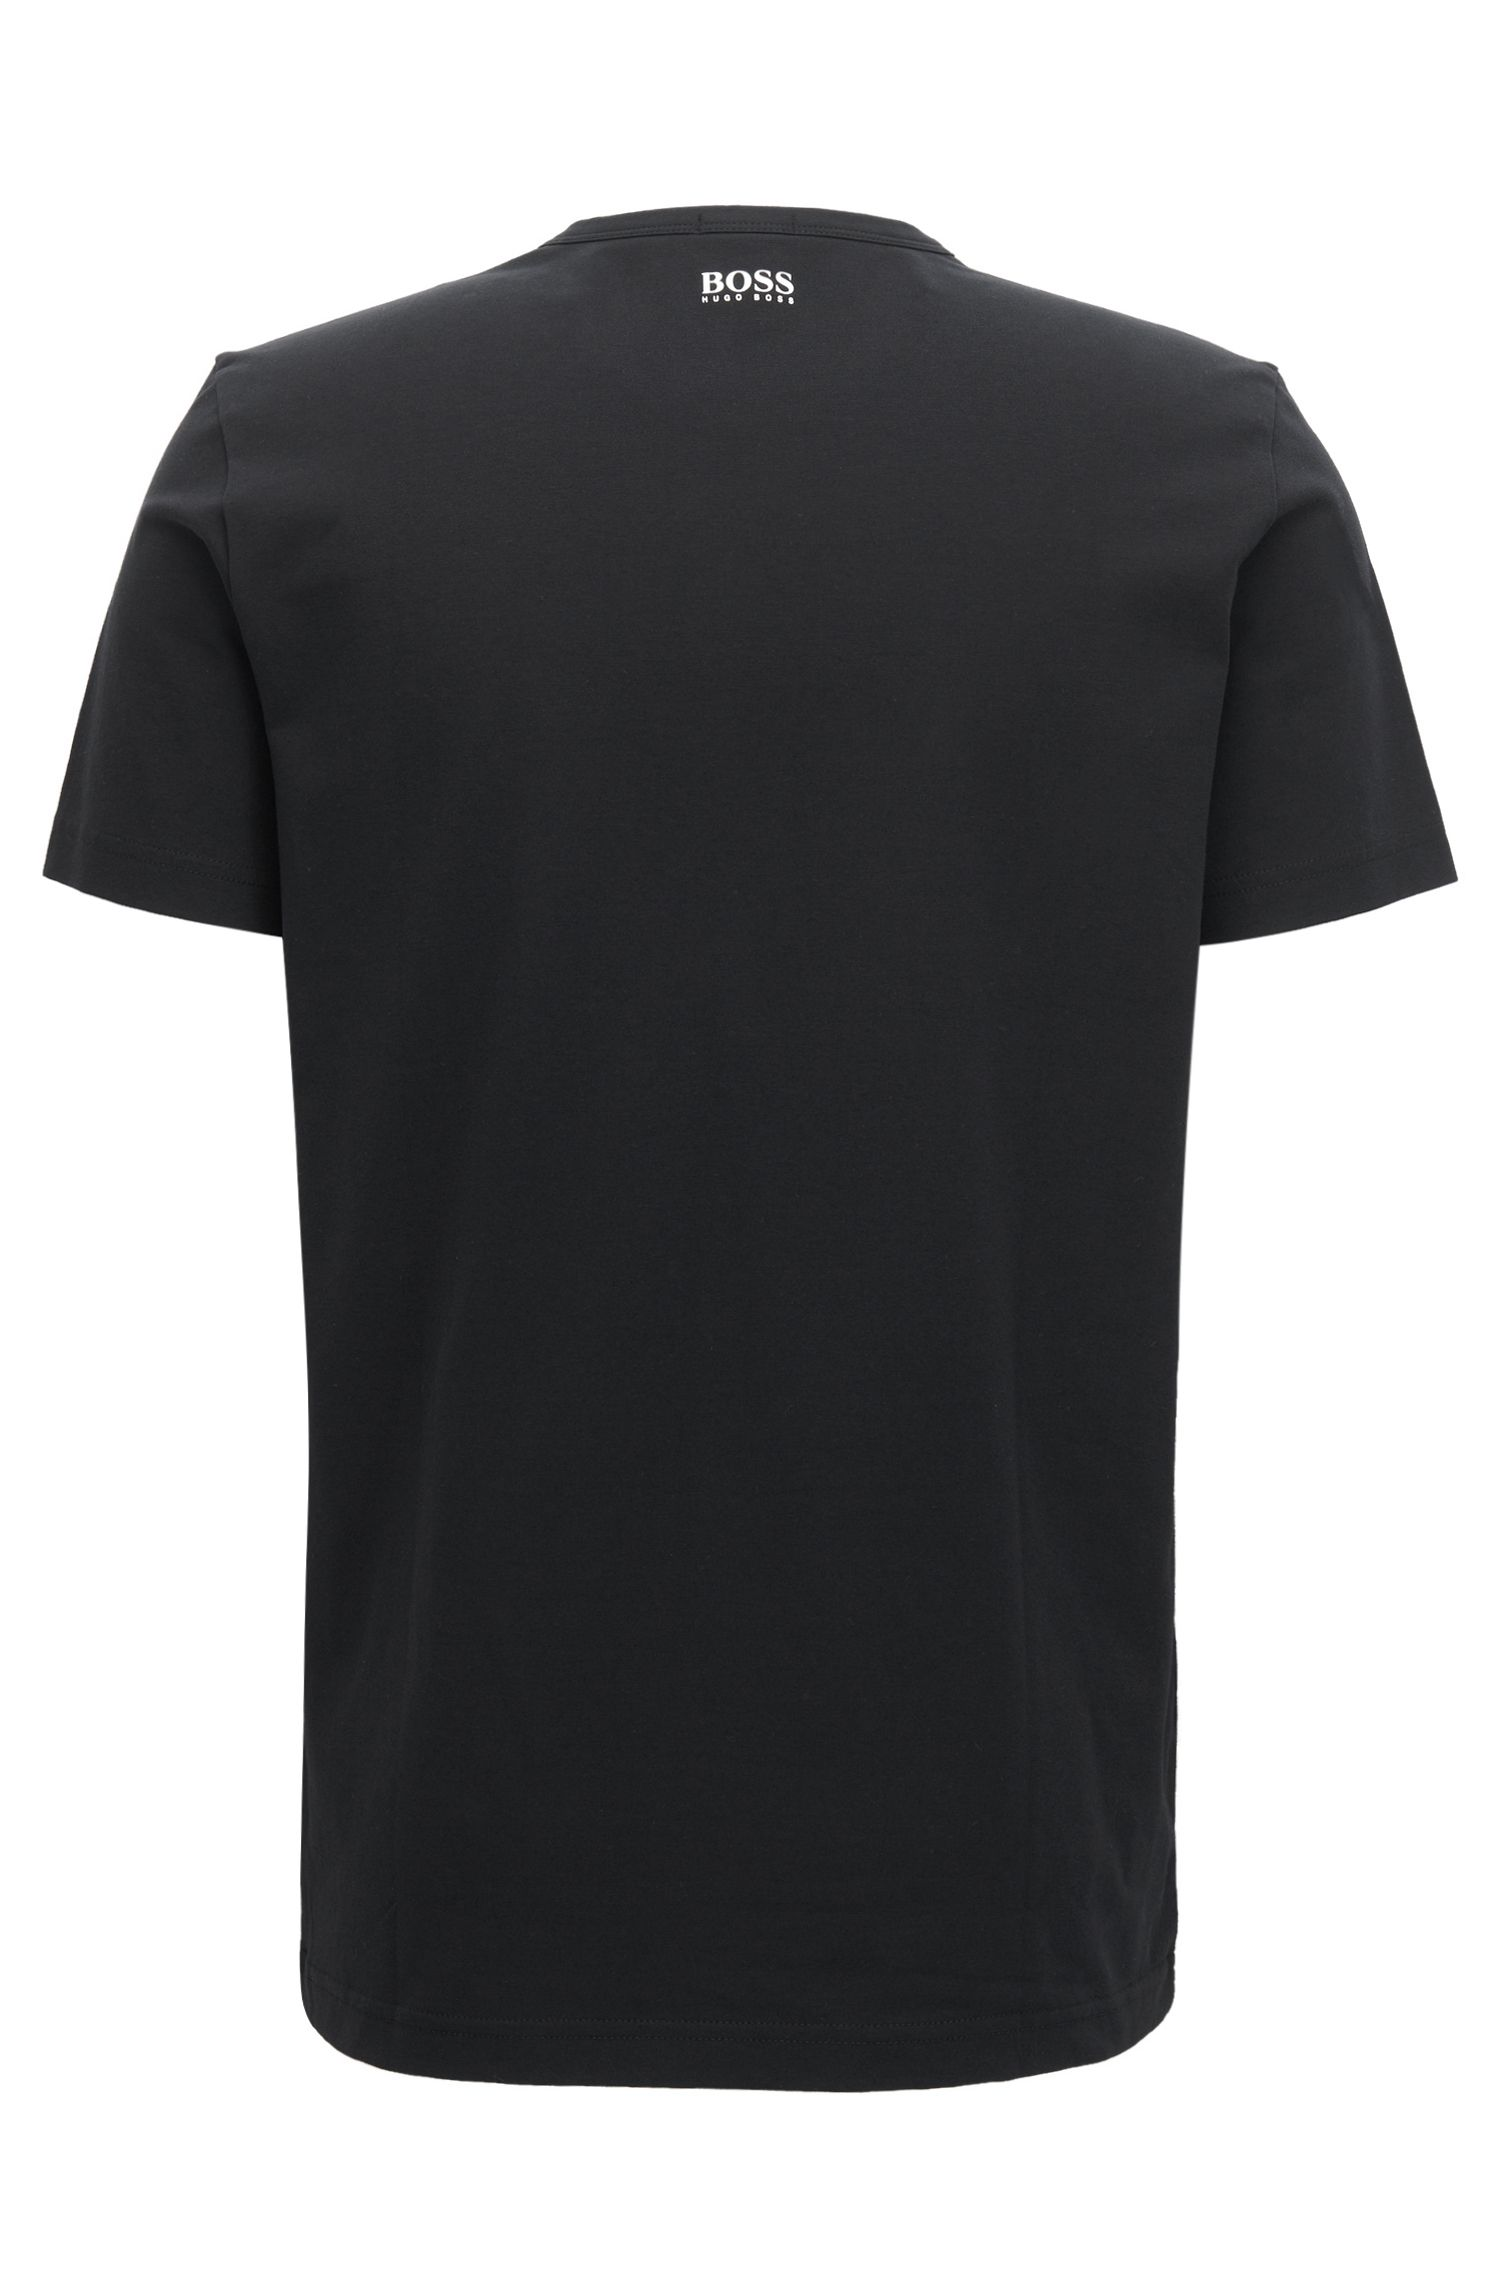 Stretch Cotton Graphic T-Shirt | Tee, Black